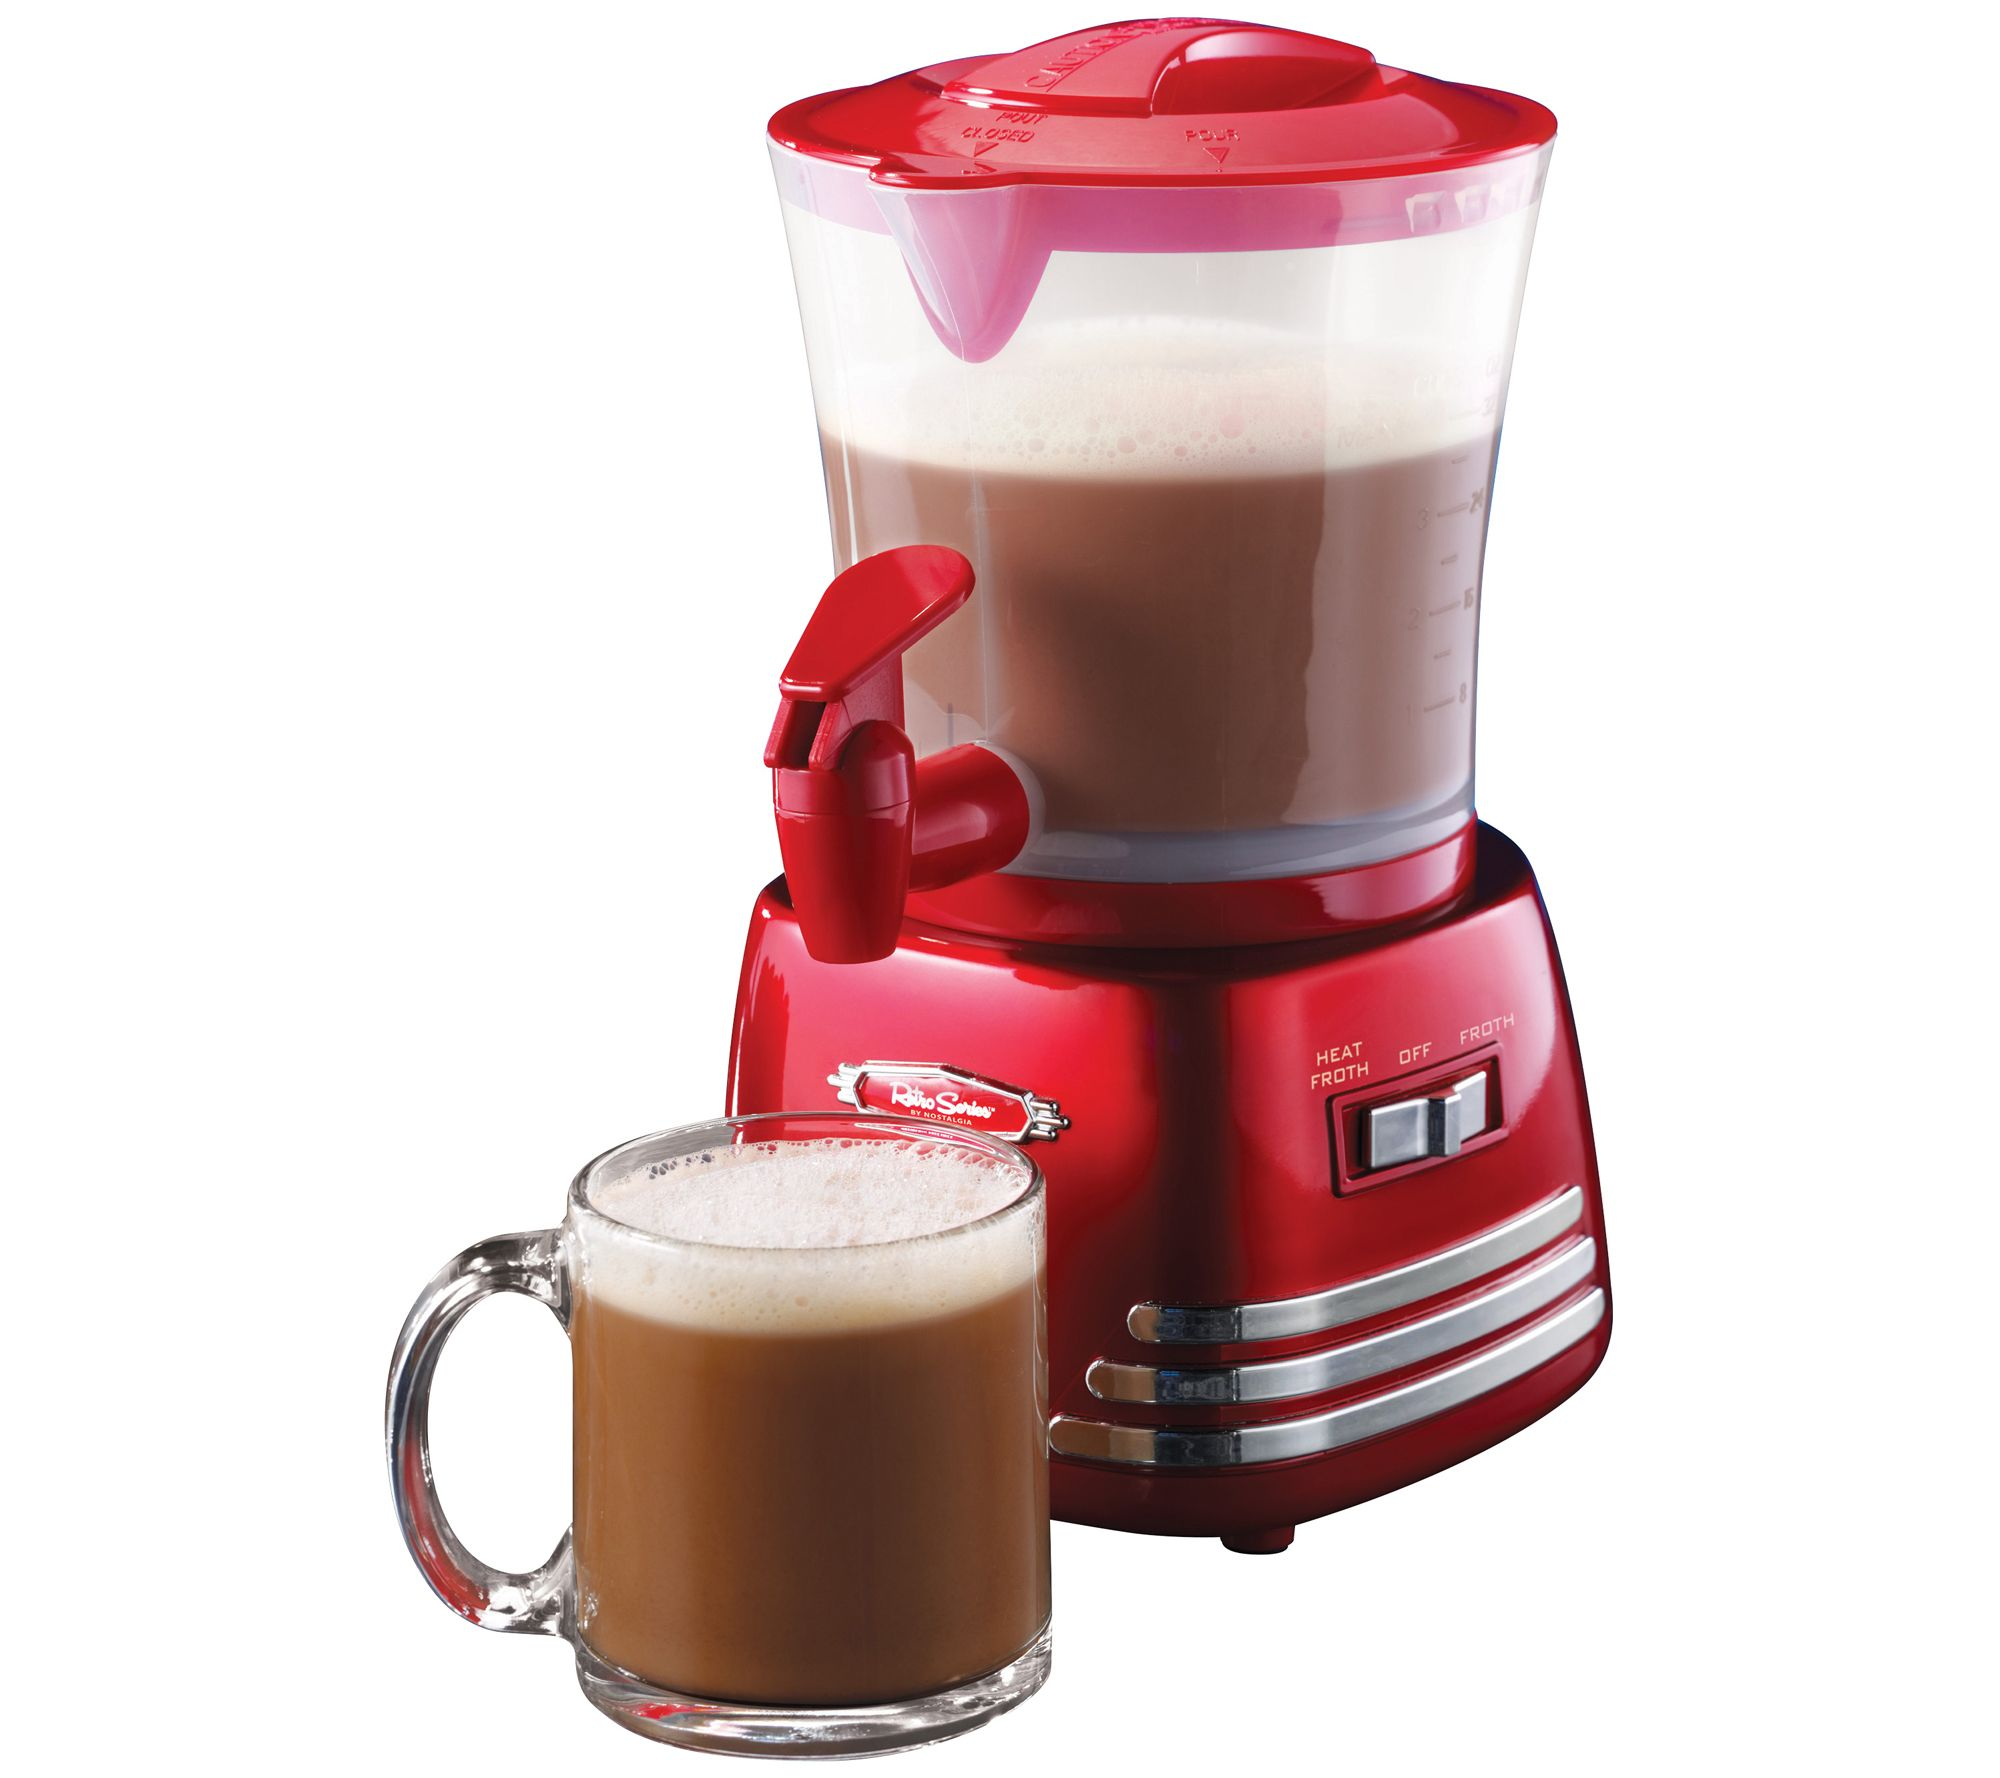 25% off a hot chocolate maker & frother